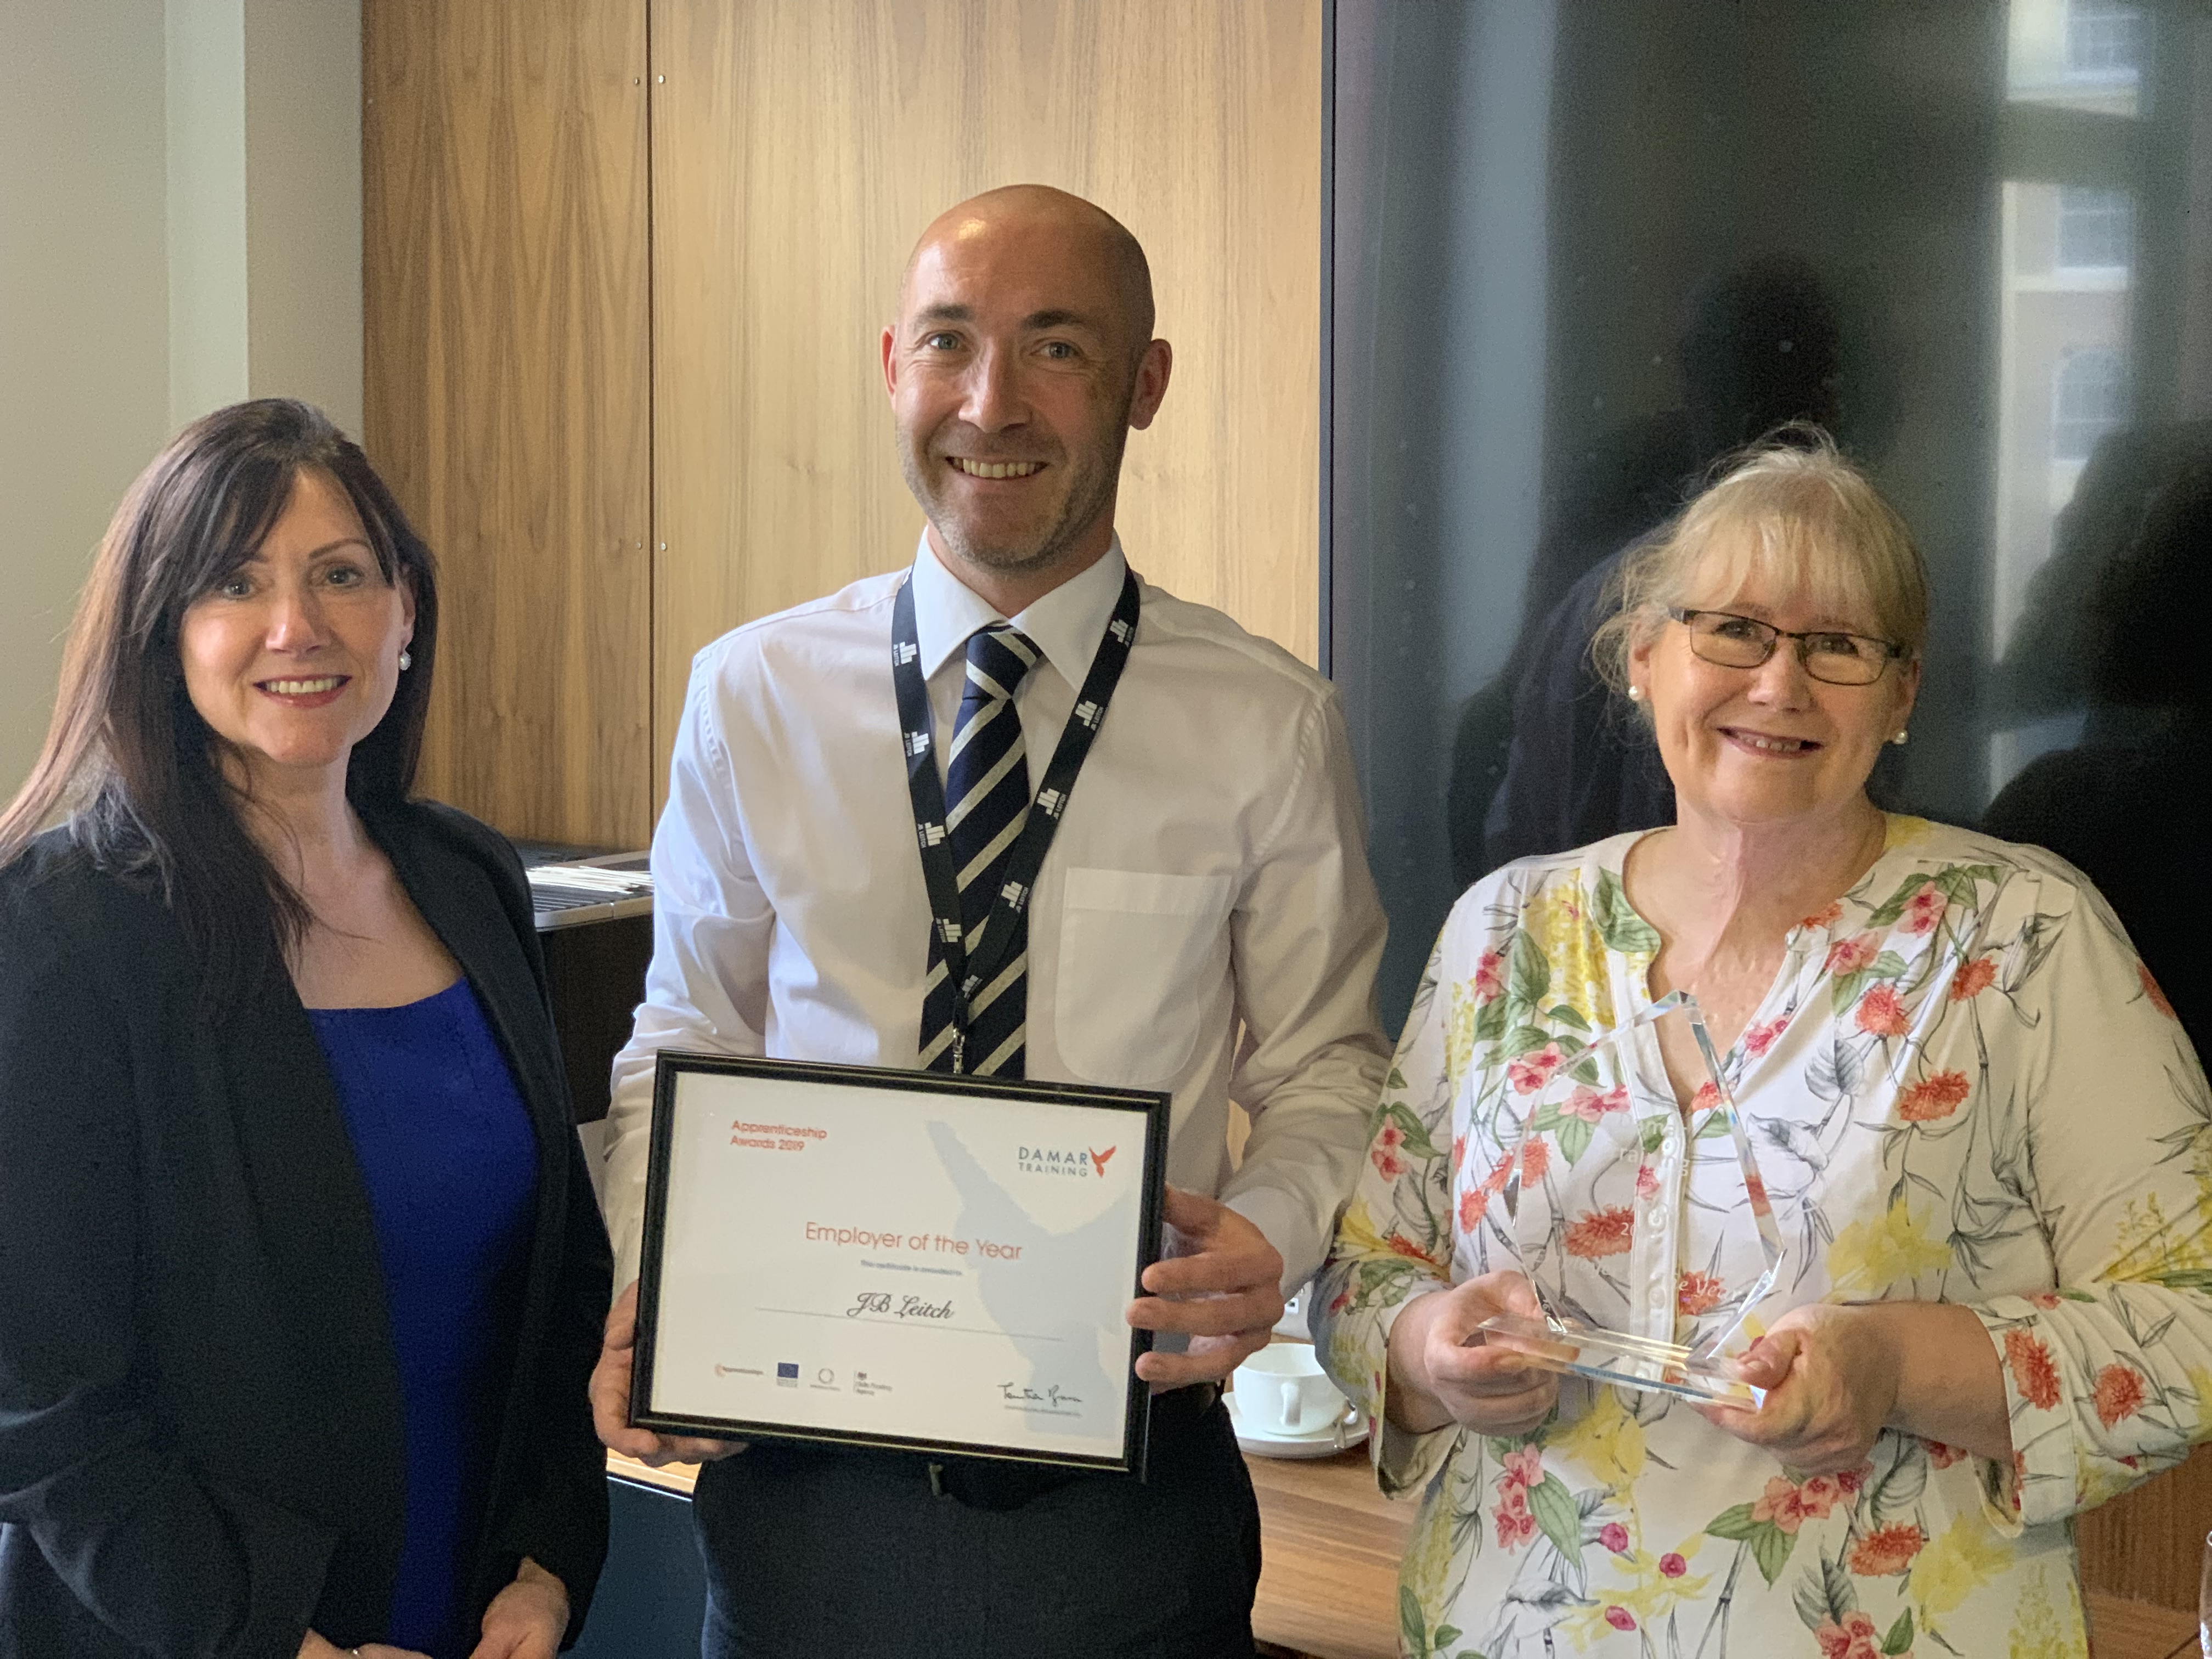 JB Leitch named 'Employer of the Year'